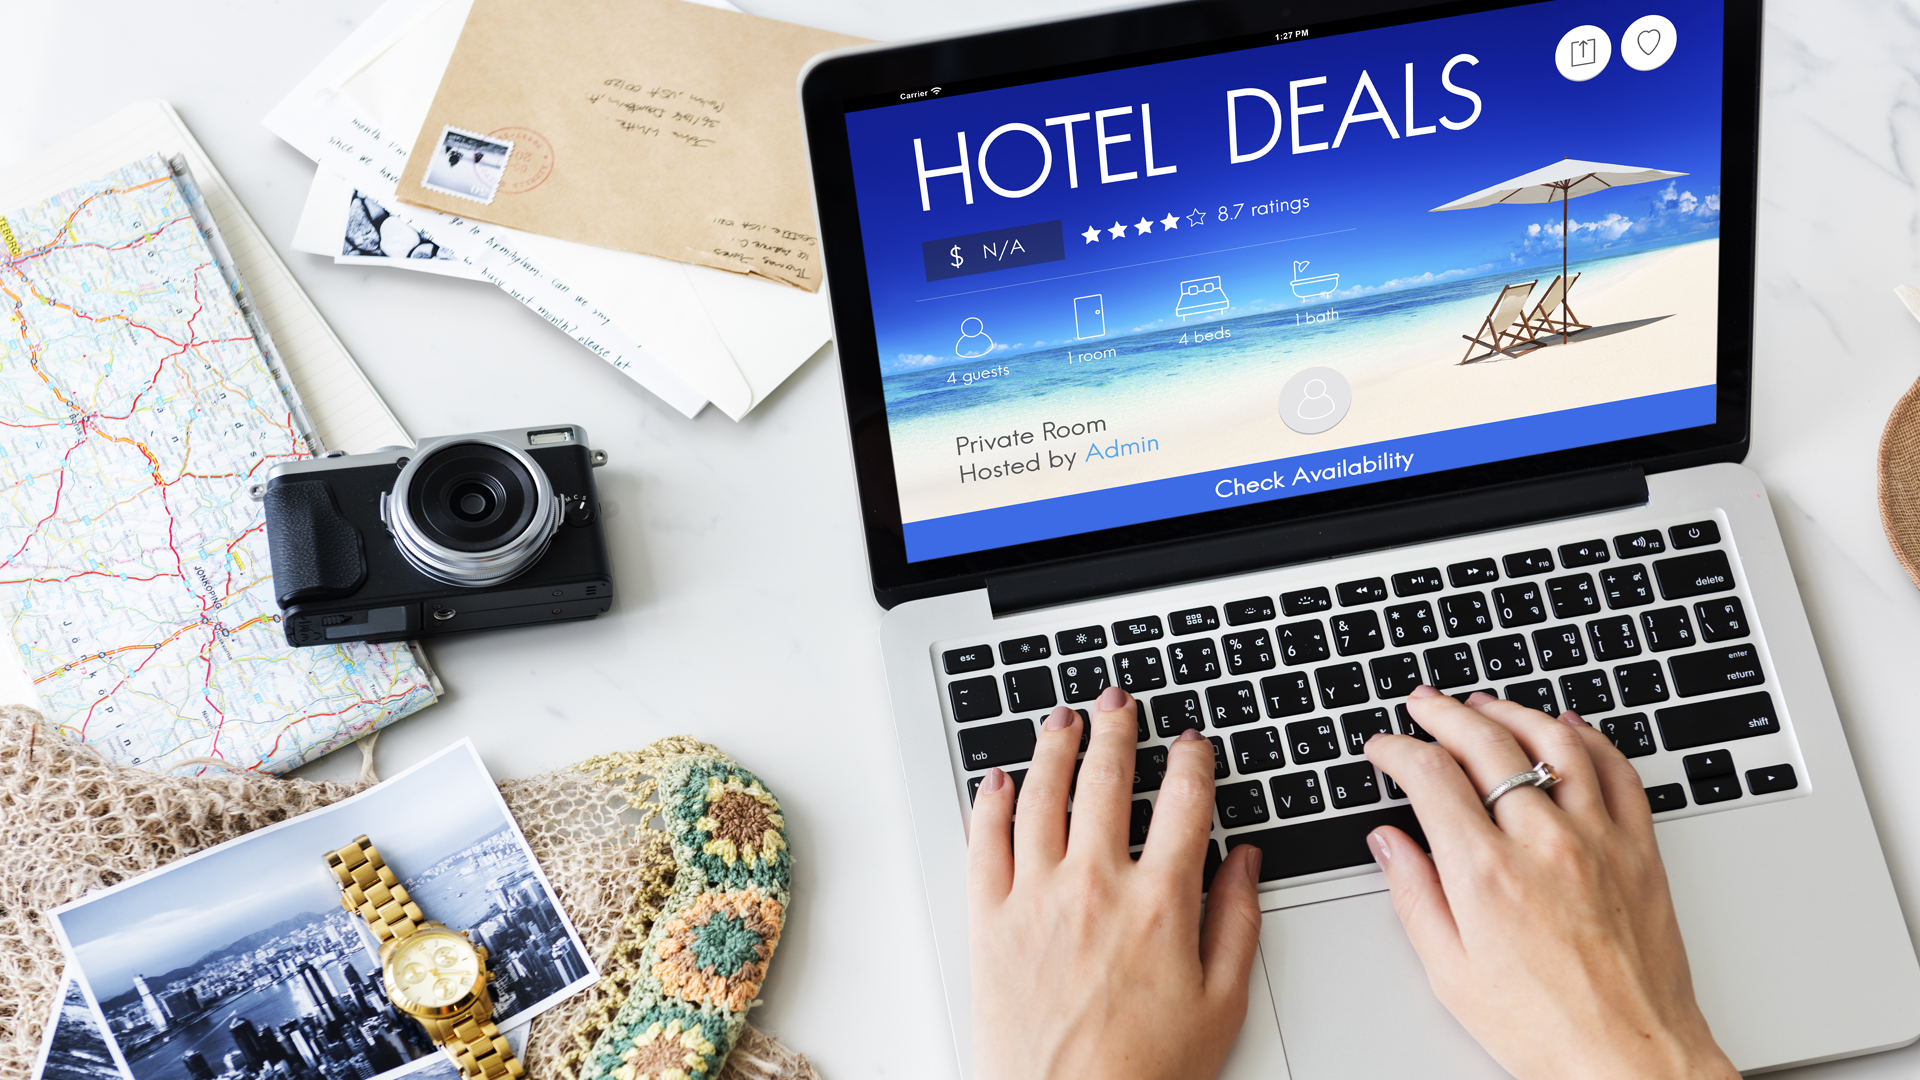 laptop with its screen showing Hotel Deals on a desk with a camera, maps, and travel plans